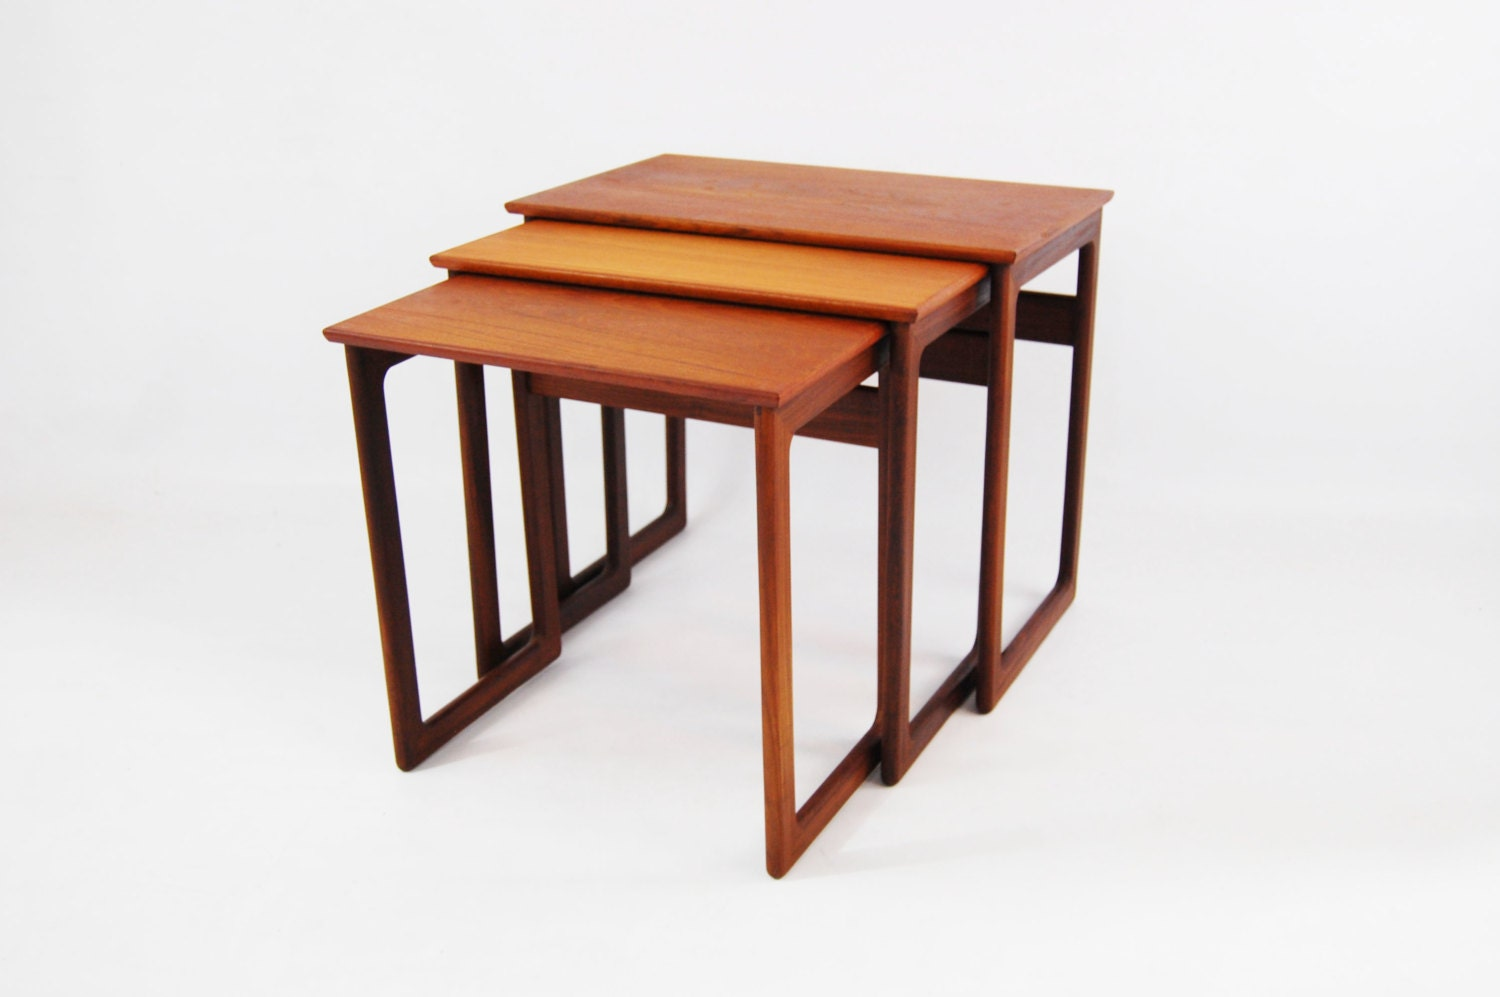 Contemporary Nesting Tables ~ Danish modern teak nesting tables